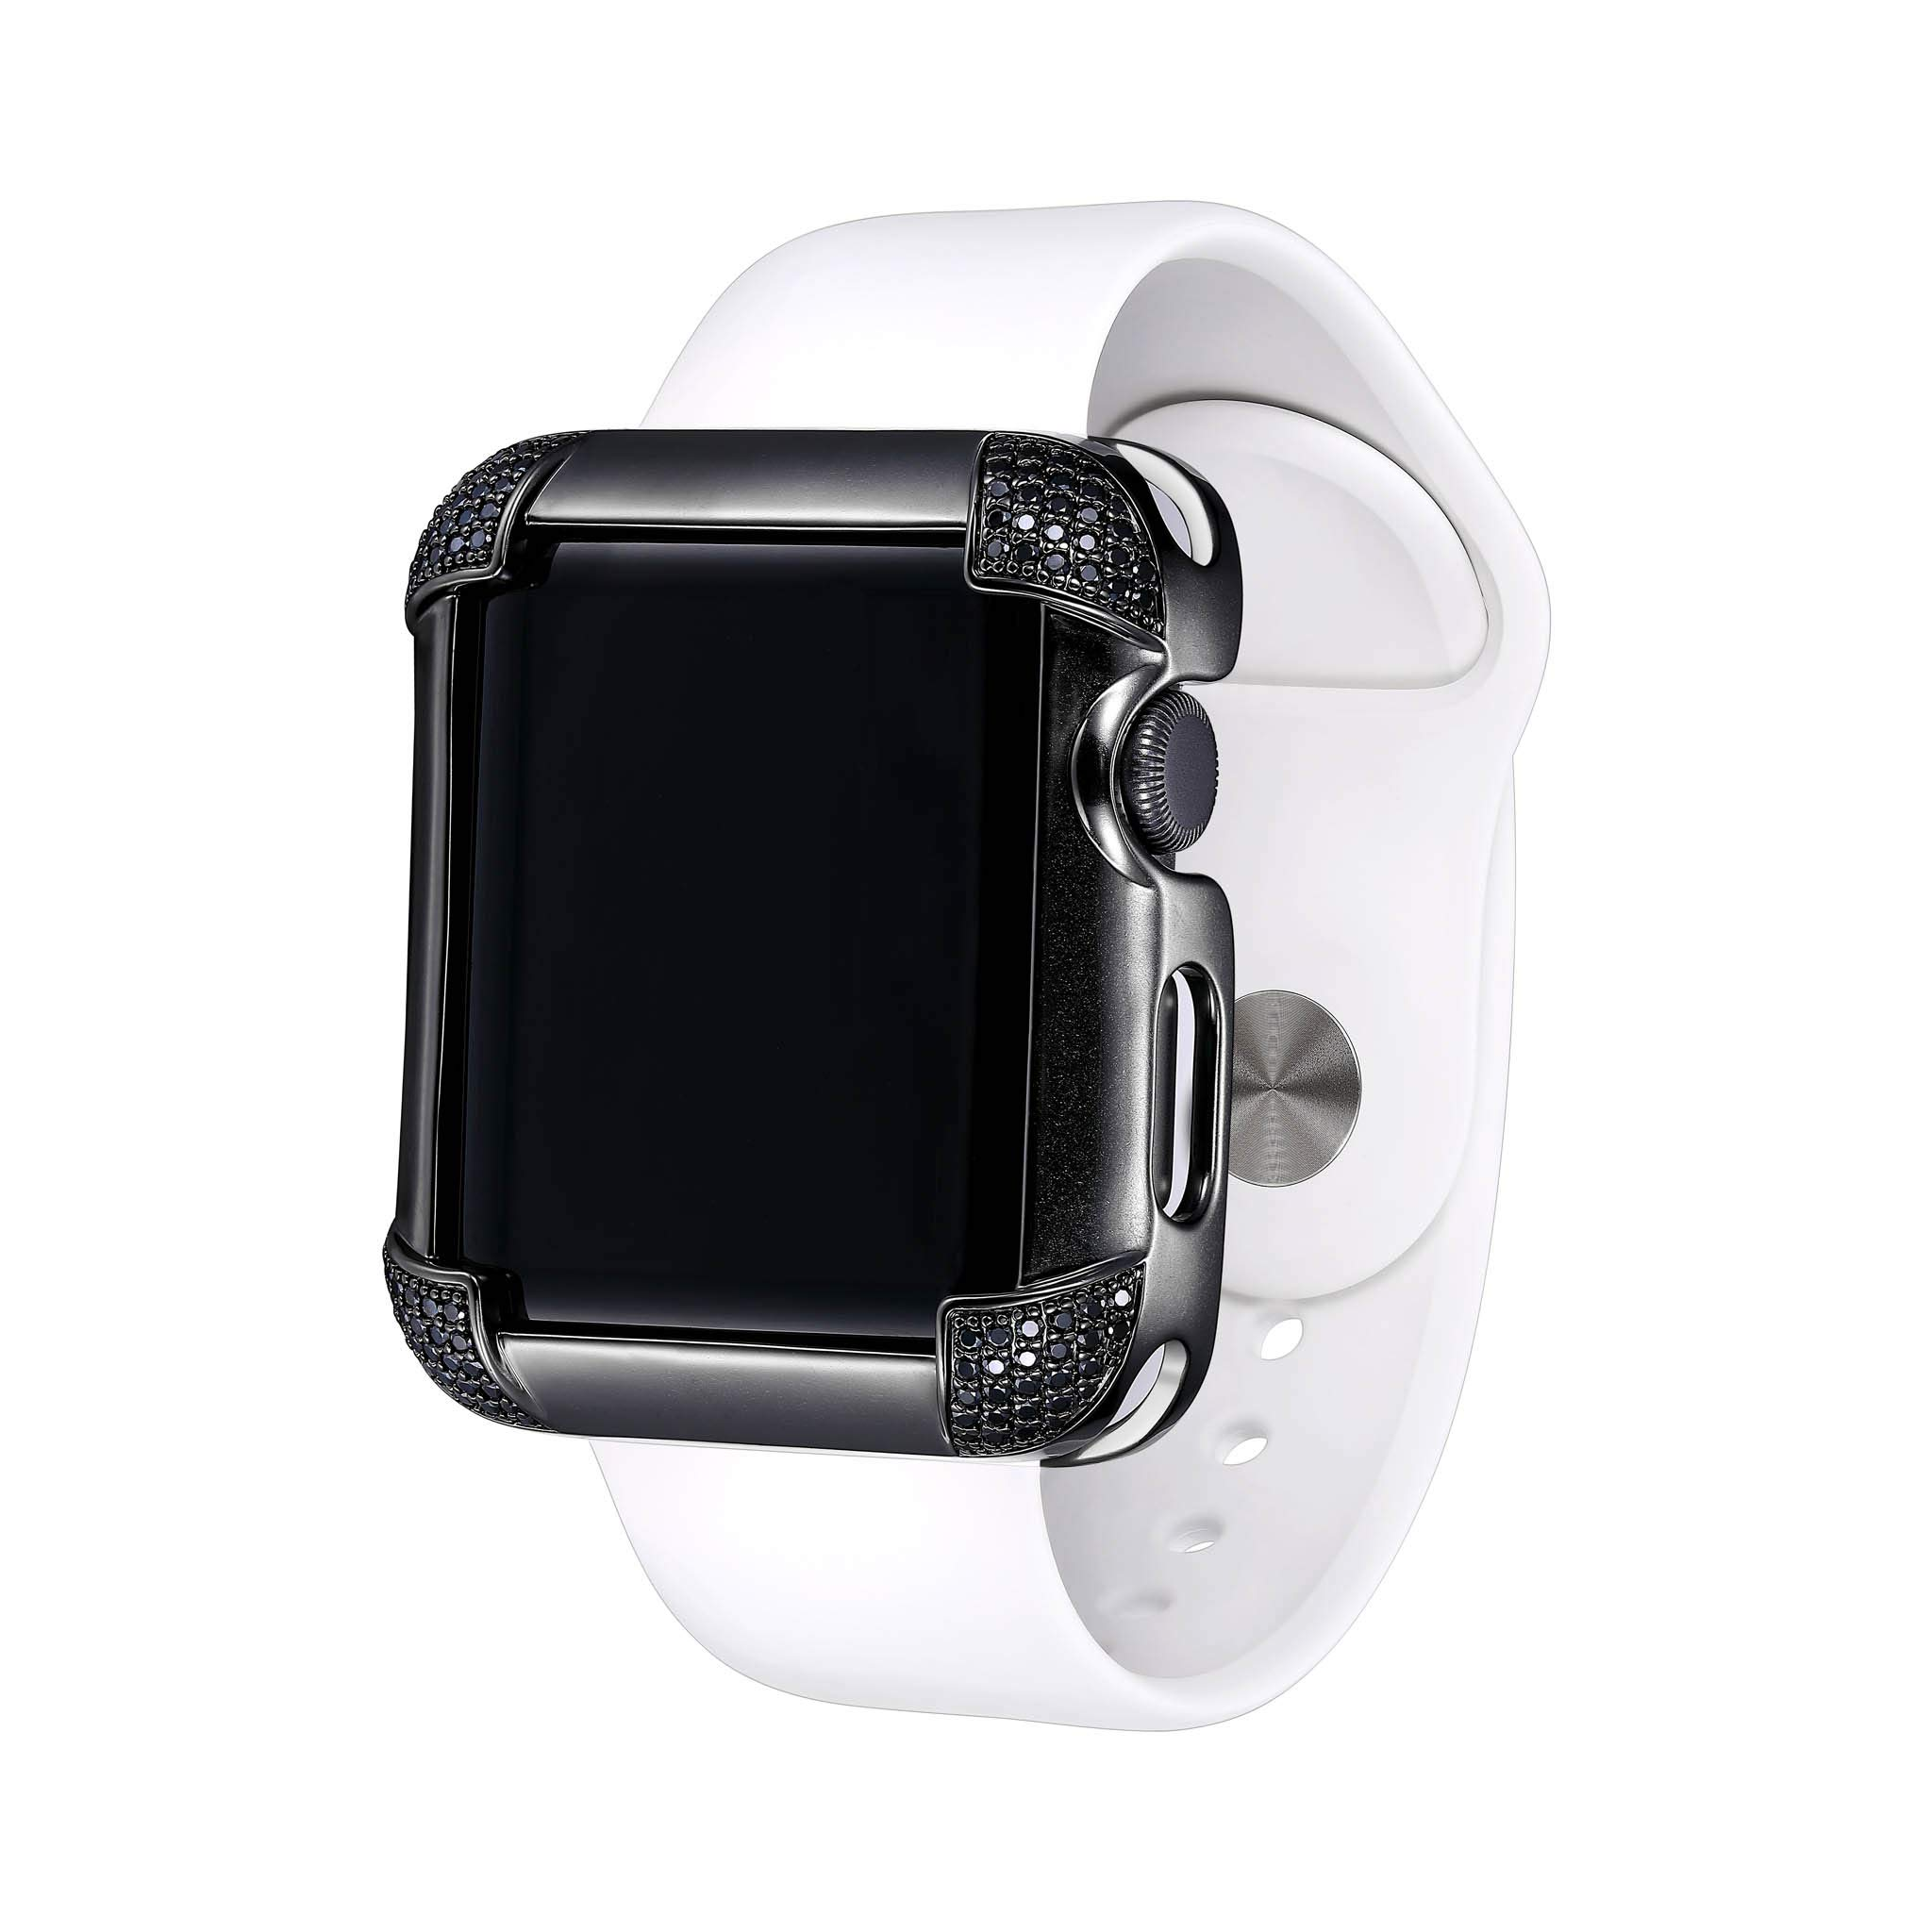 Matte Black Rhodium Plated Jewelry-Style Apple Watch Case with Genuine Spinel Pavé Corners - Large (Fits 42mm iWatch) by SkyB (Image #4)